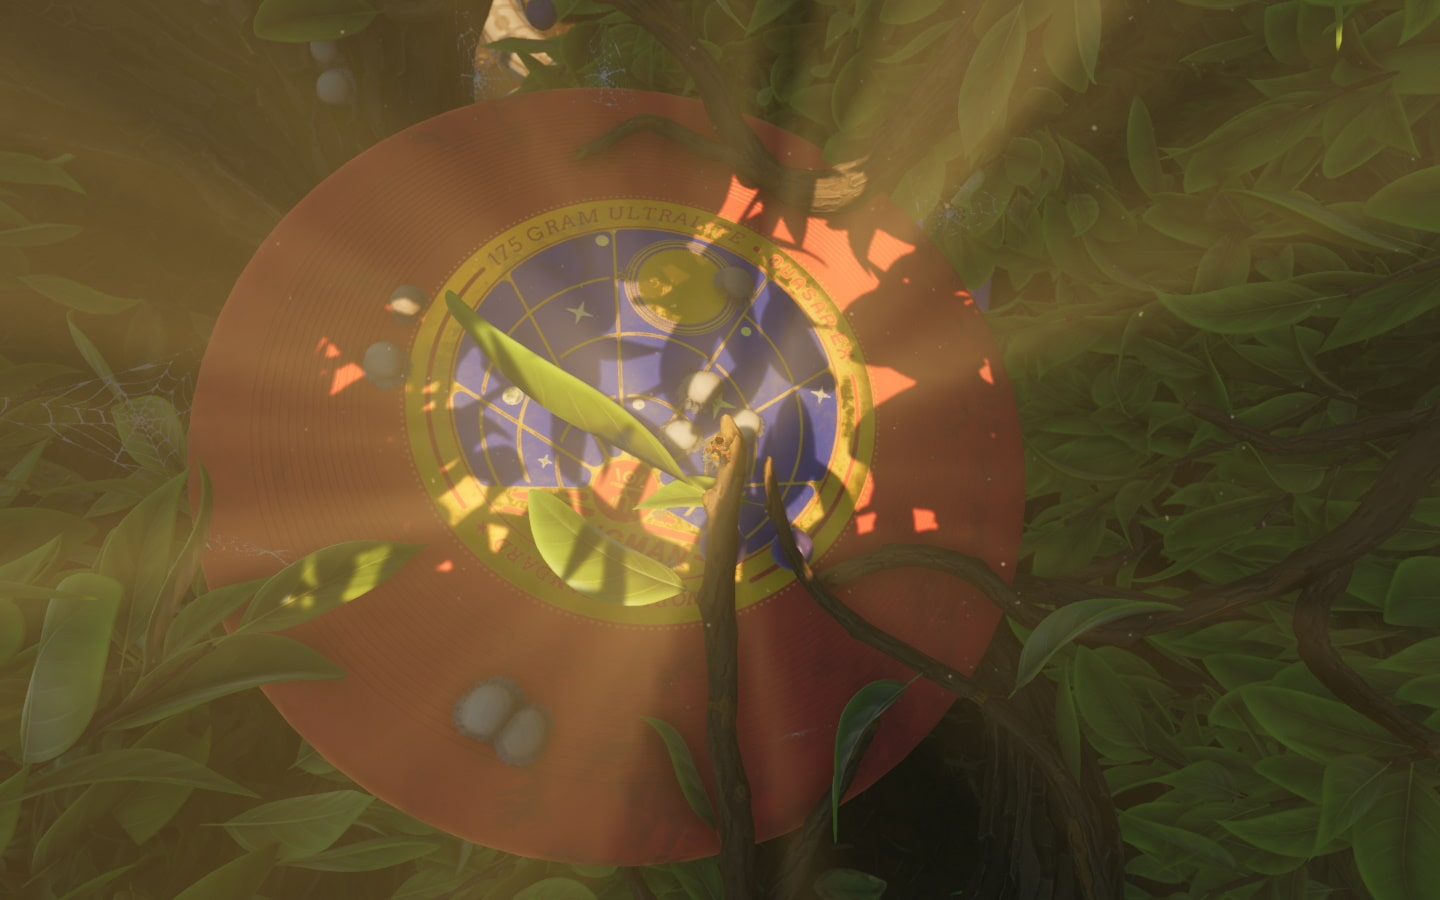 The Flingman Flying Disc in the Grounded game.